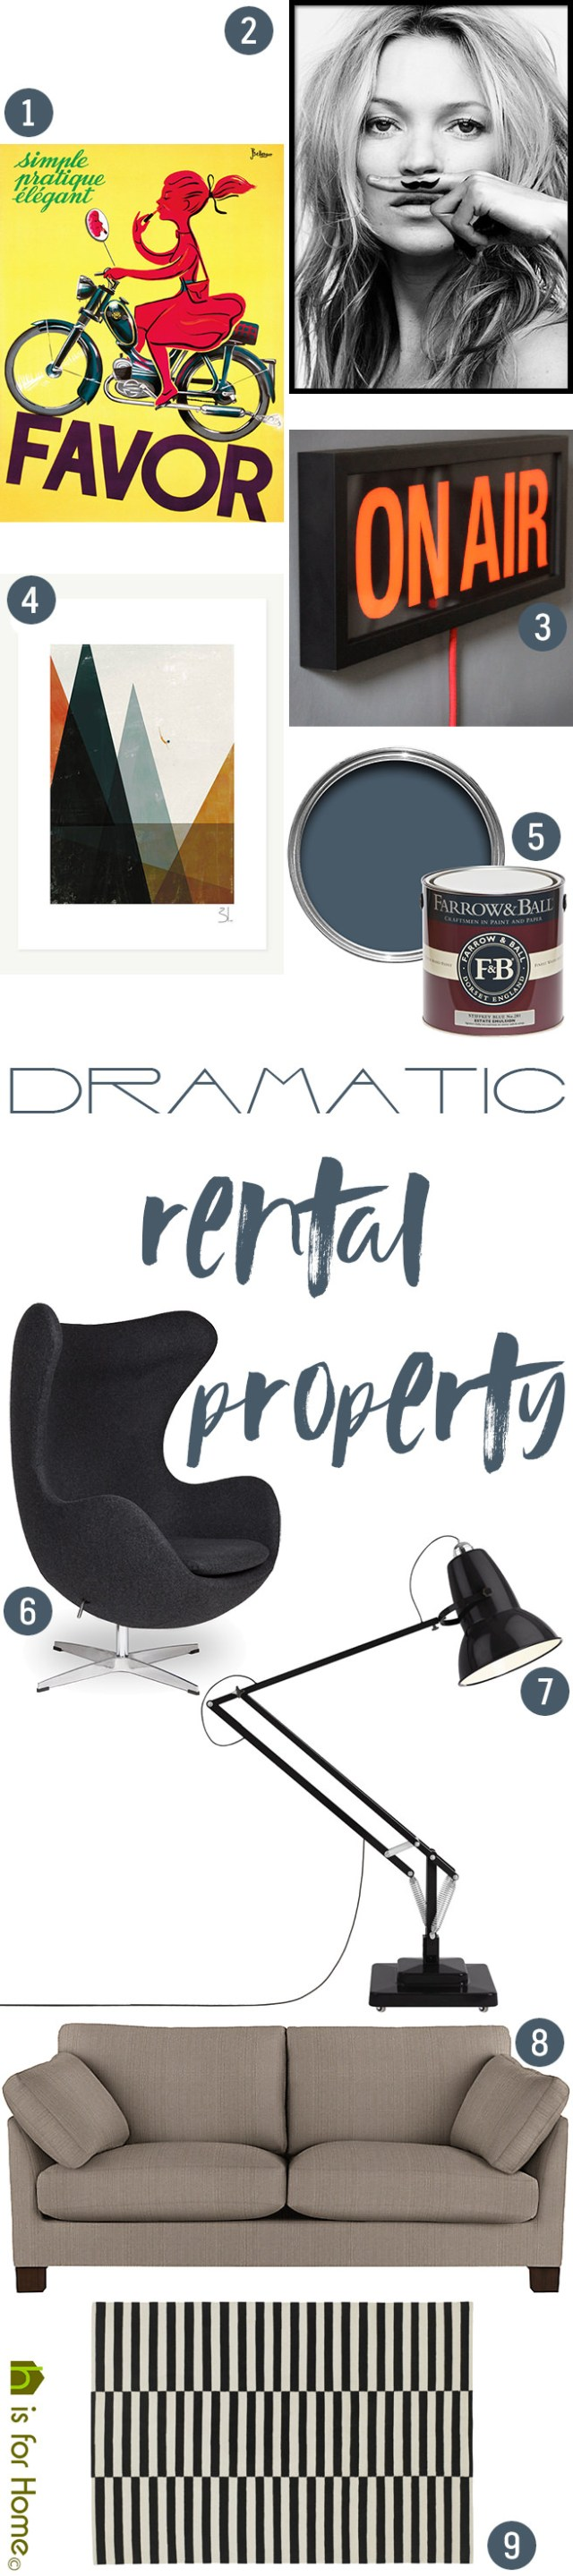 Get their look: Dramatic rental property | H is for Home